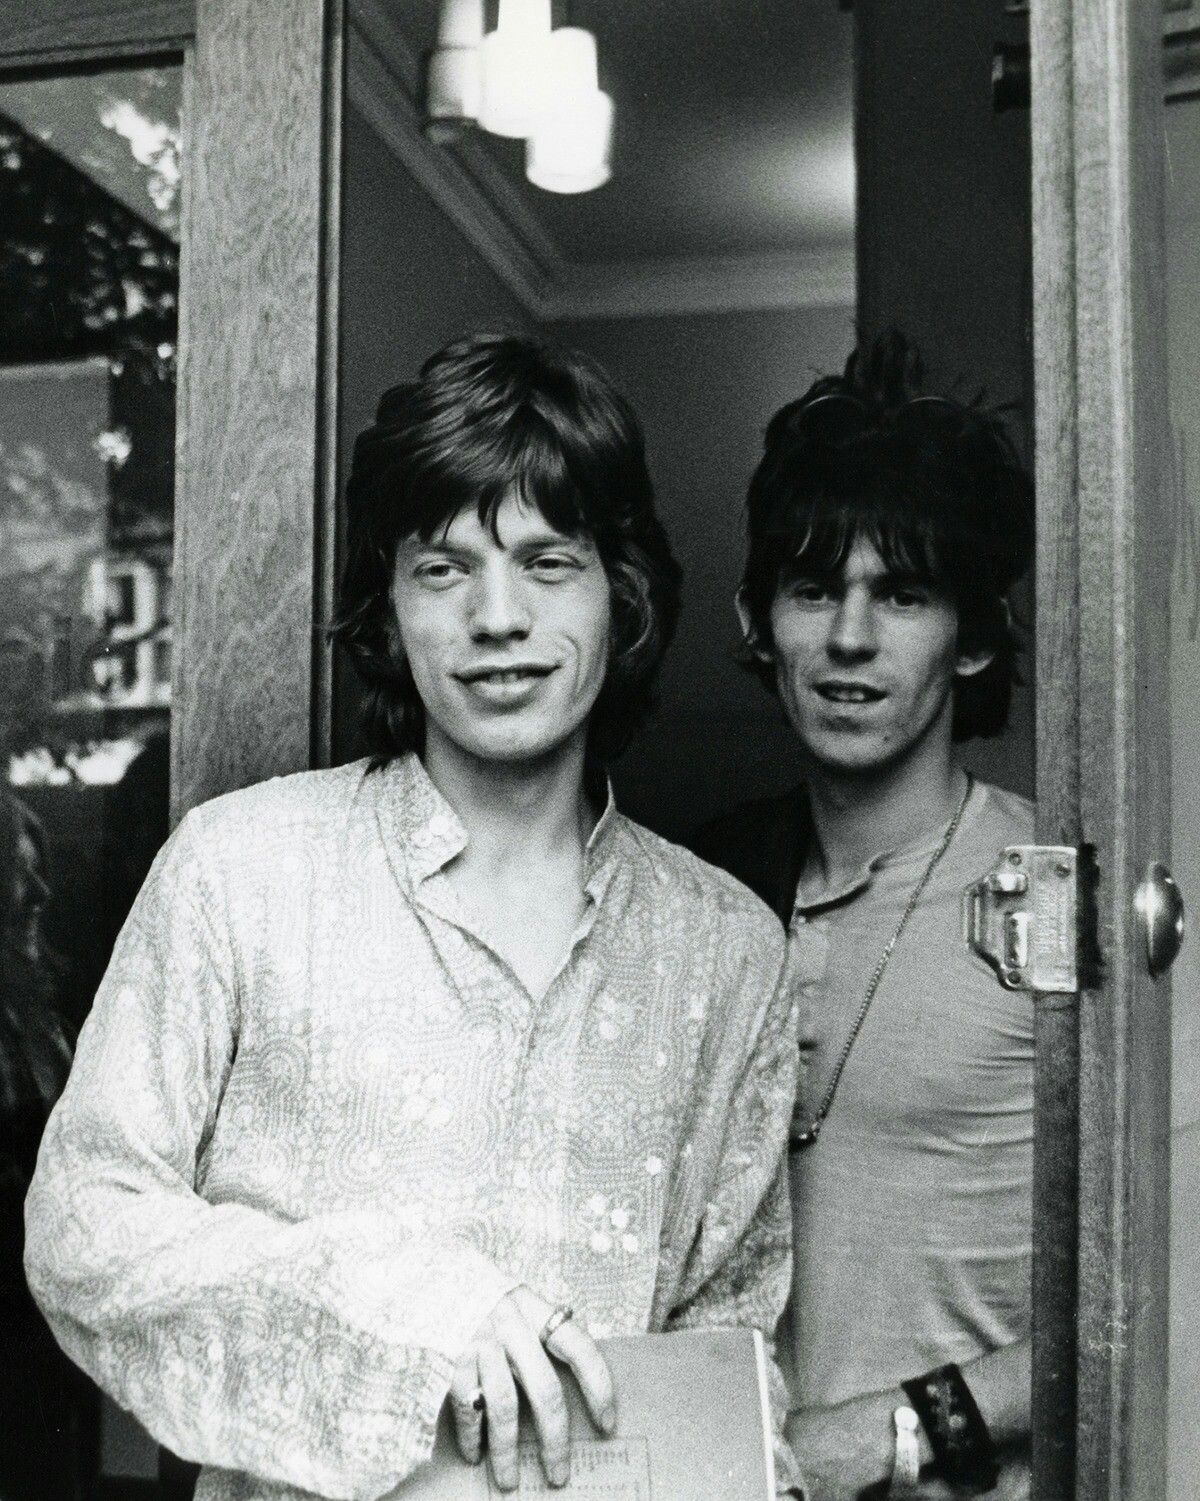 Mick jagger and keith richards the rolling stones top classic mick jagger and keith richards the rolling stones nvjuhfo Image collections